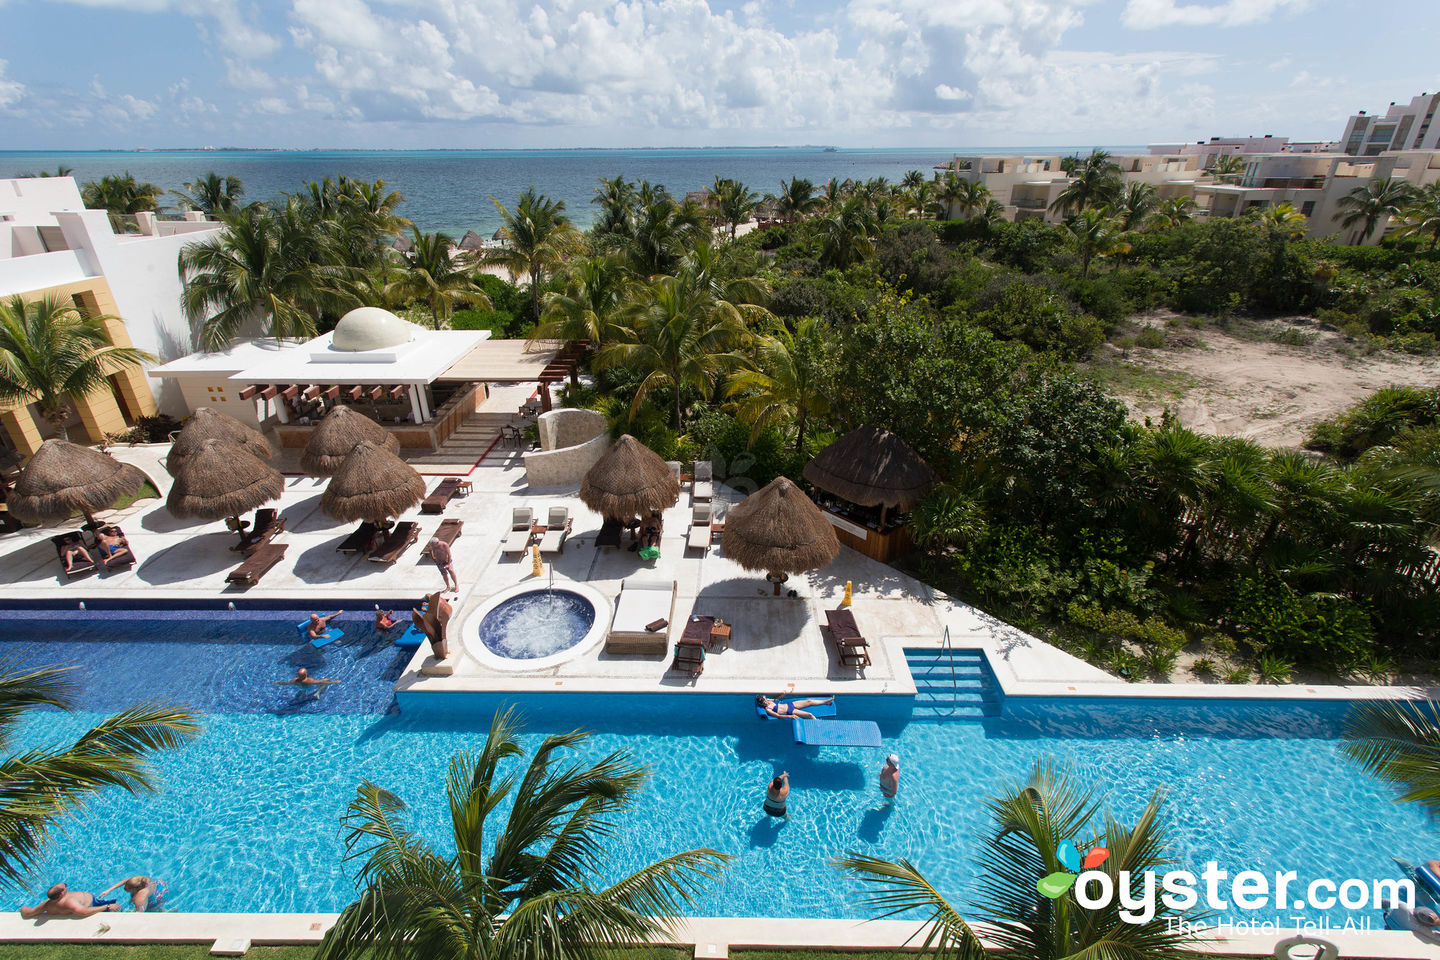 The In Most Mexico Beach Romantic Hotels Caribbean And 8nw0OPk